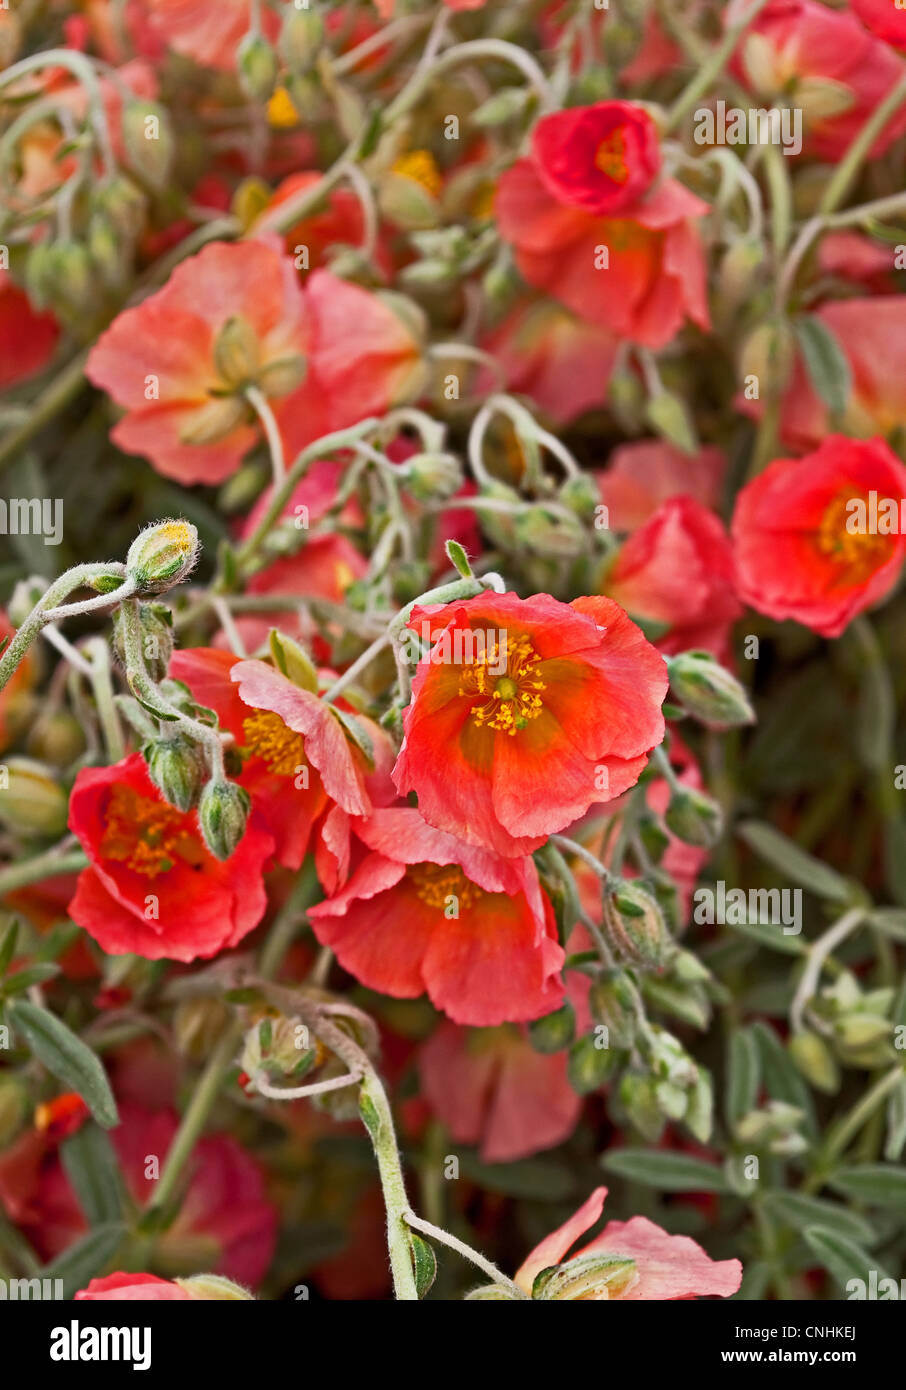 Apricot Colored Flowers Stock Photos & Apricot Colored Flowers Stock ...